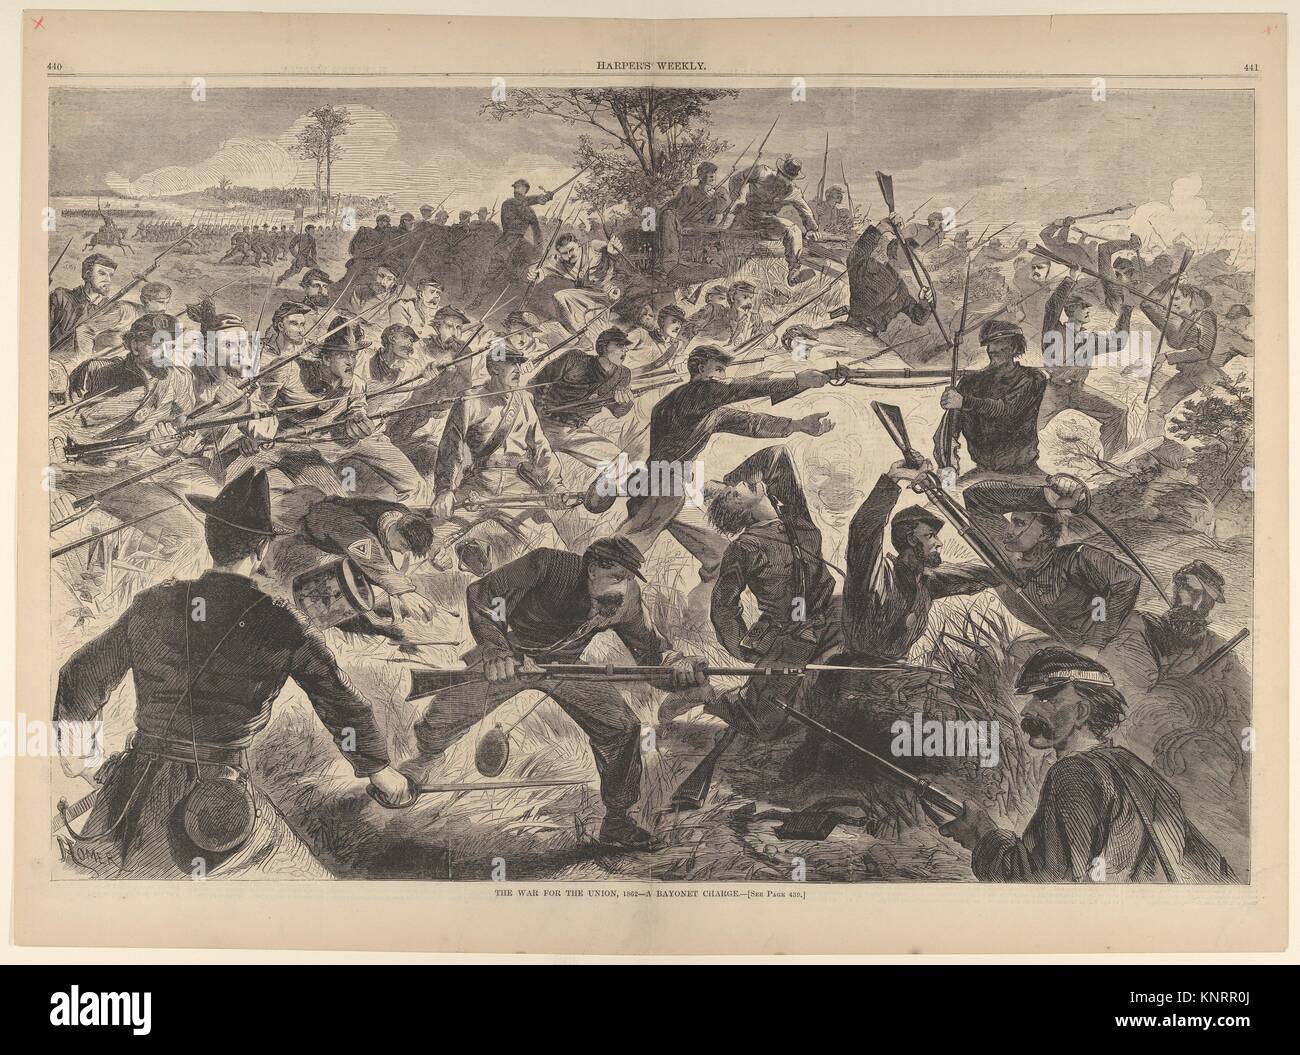 The War for the Union, 1862 - A Bayonet Charge (Harper's Weekly, Vol. VII). Artist: Winslow Homer (American, - Stock Image